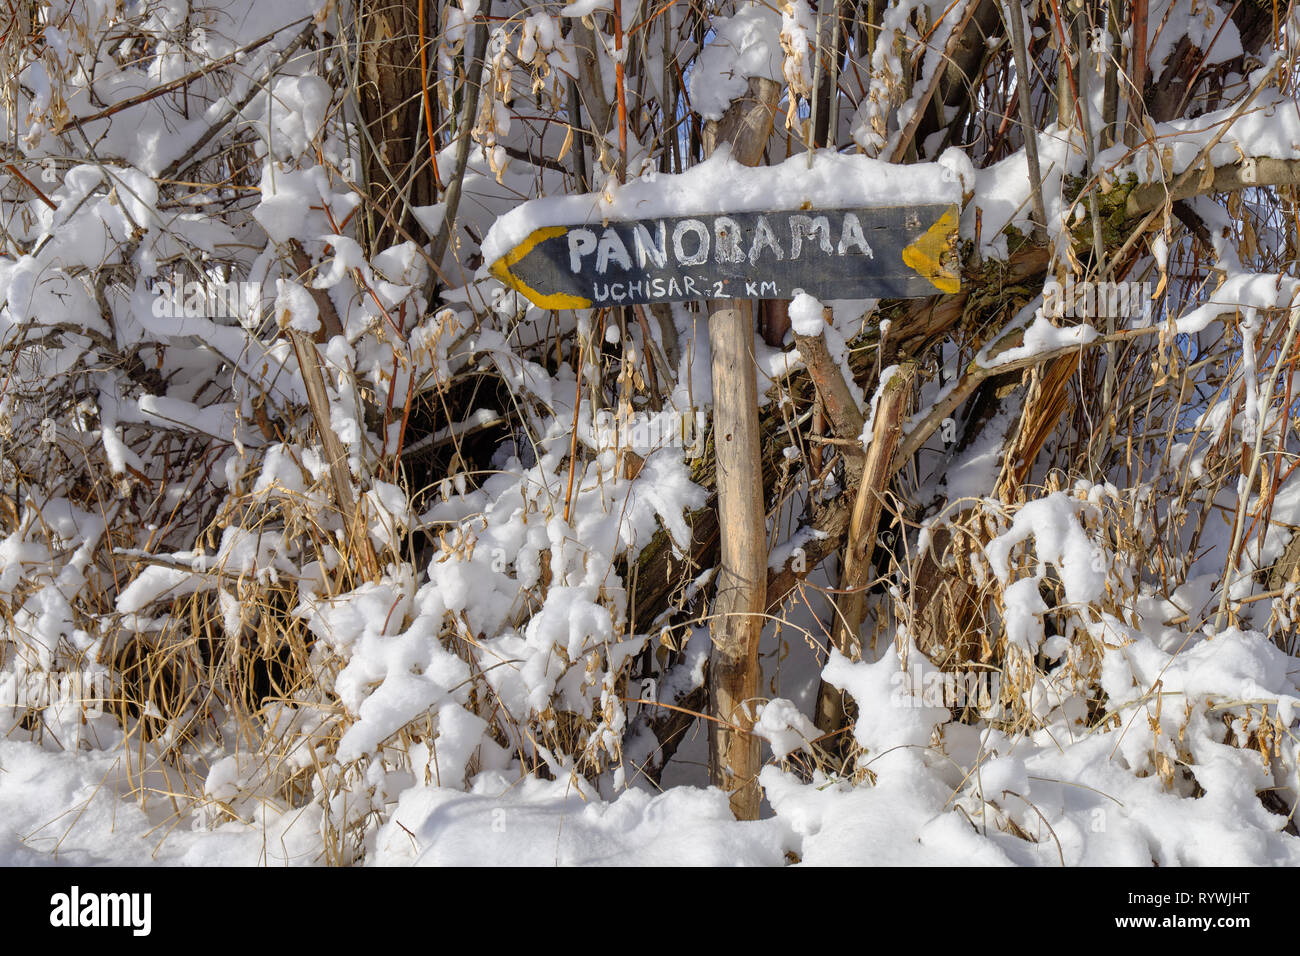 Arrow and sign pointing direction to Panoramic view of Cappadocia covered in fresh snow, surrounded by dried vegetation Stock Photo